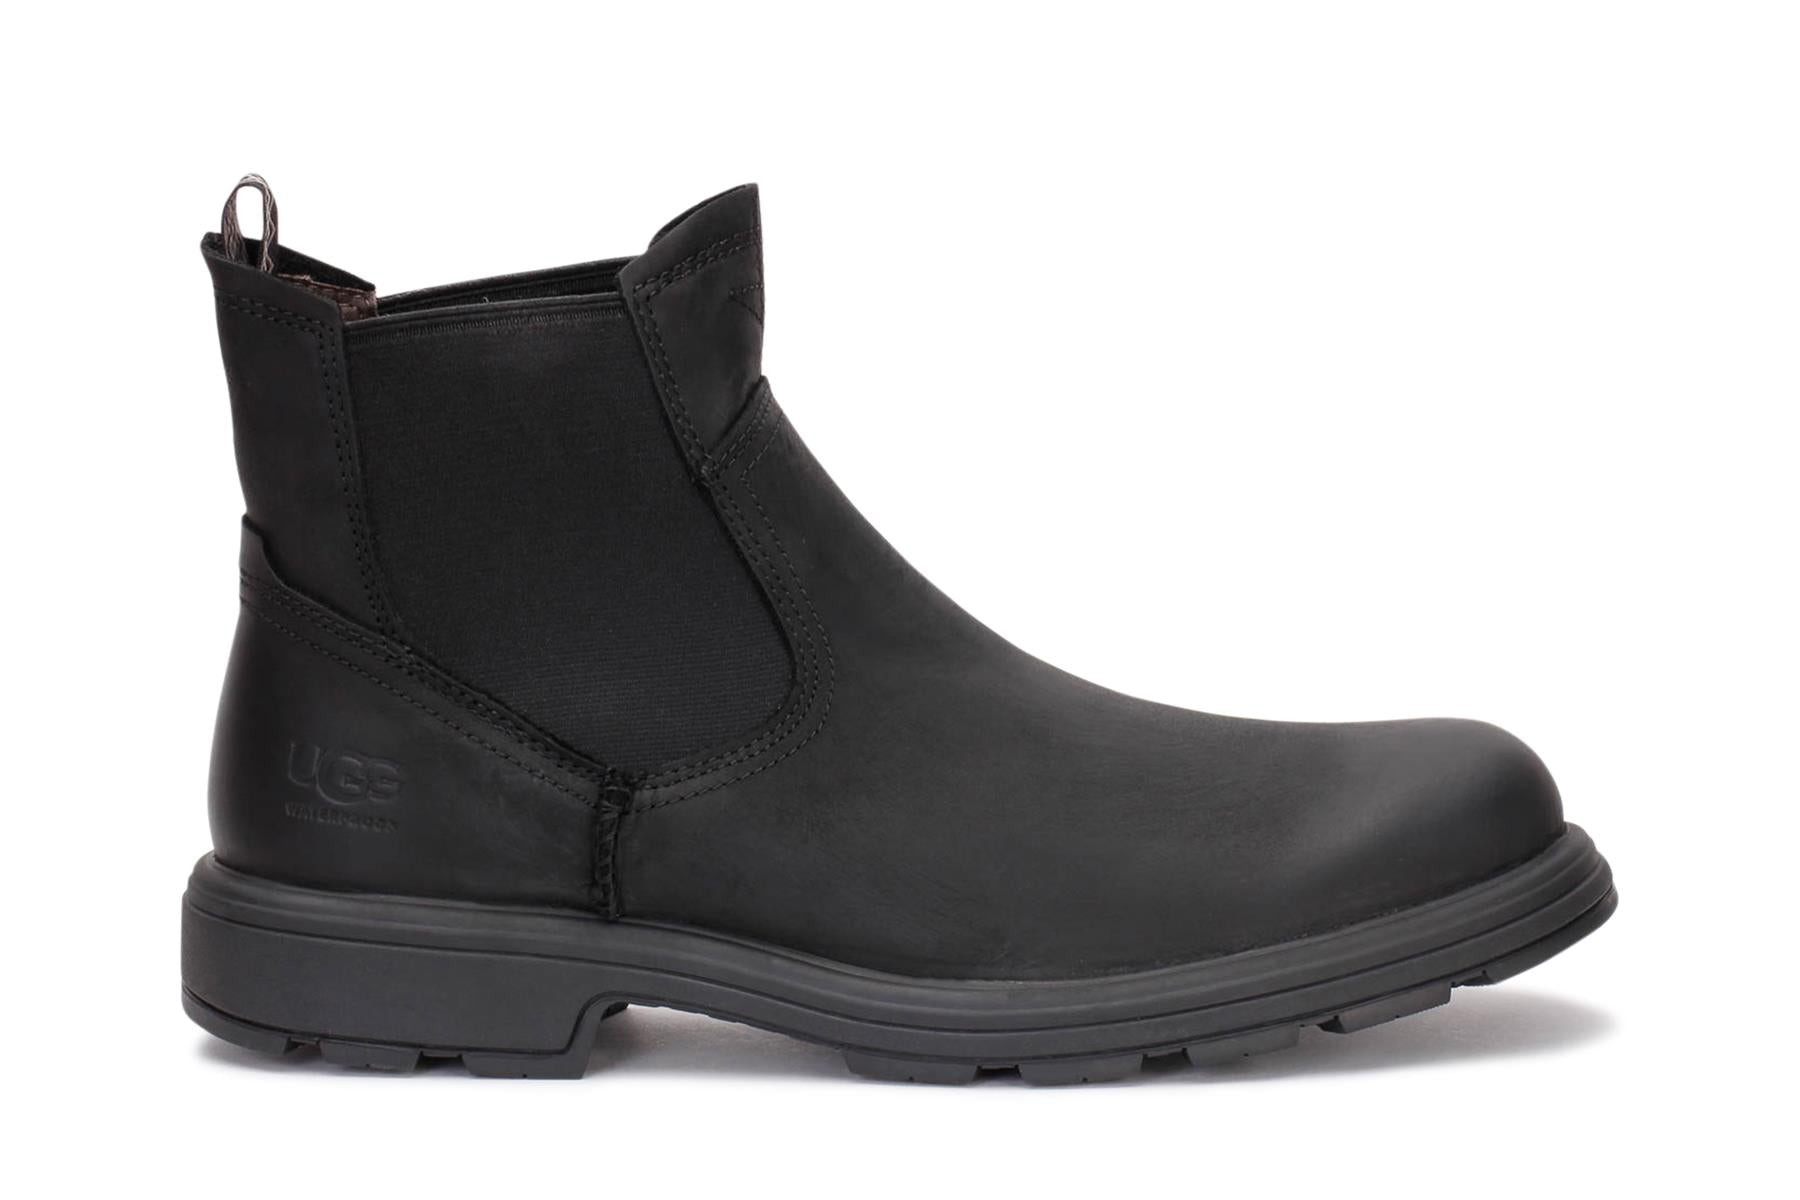 ugg-mens-biltmore-chelsea-black-waterproof-boots-main